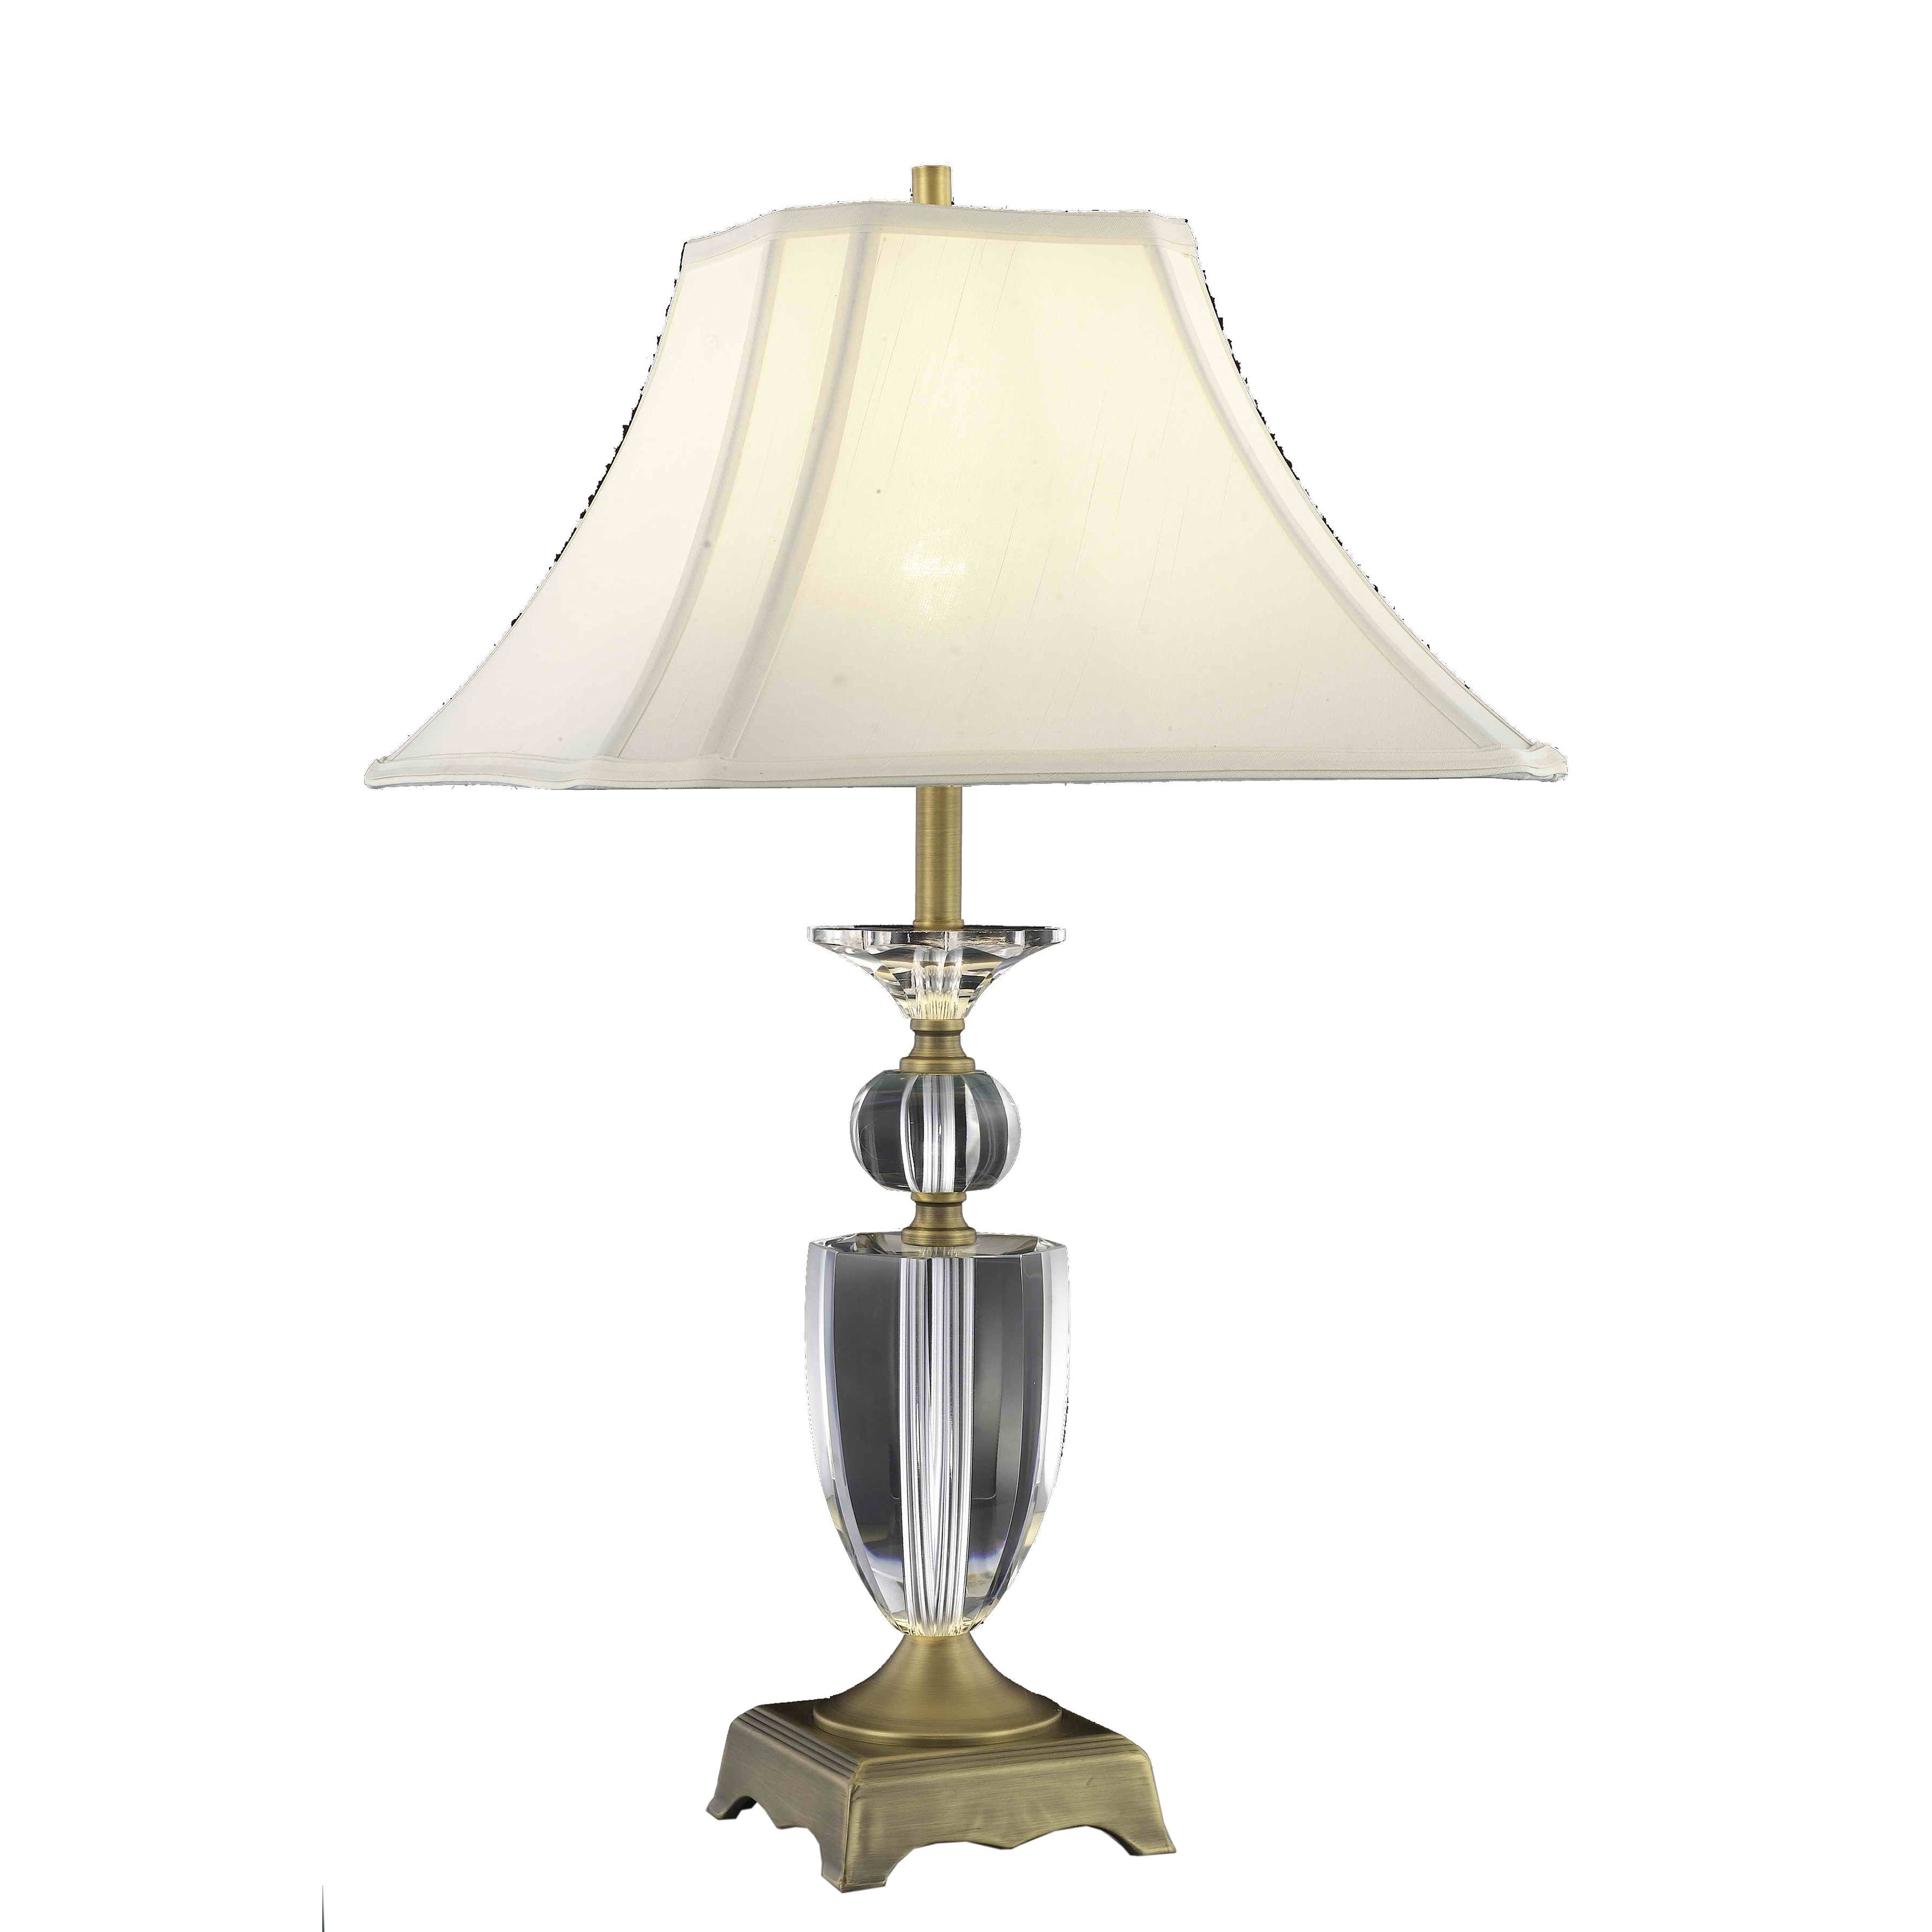 Somette poise table lamp products pinterest outlet store and somette poise crystal table lamp aged bronze crystal and metal lamp clear geotapseo Images